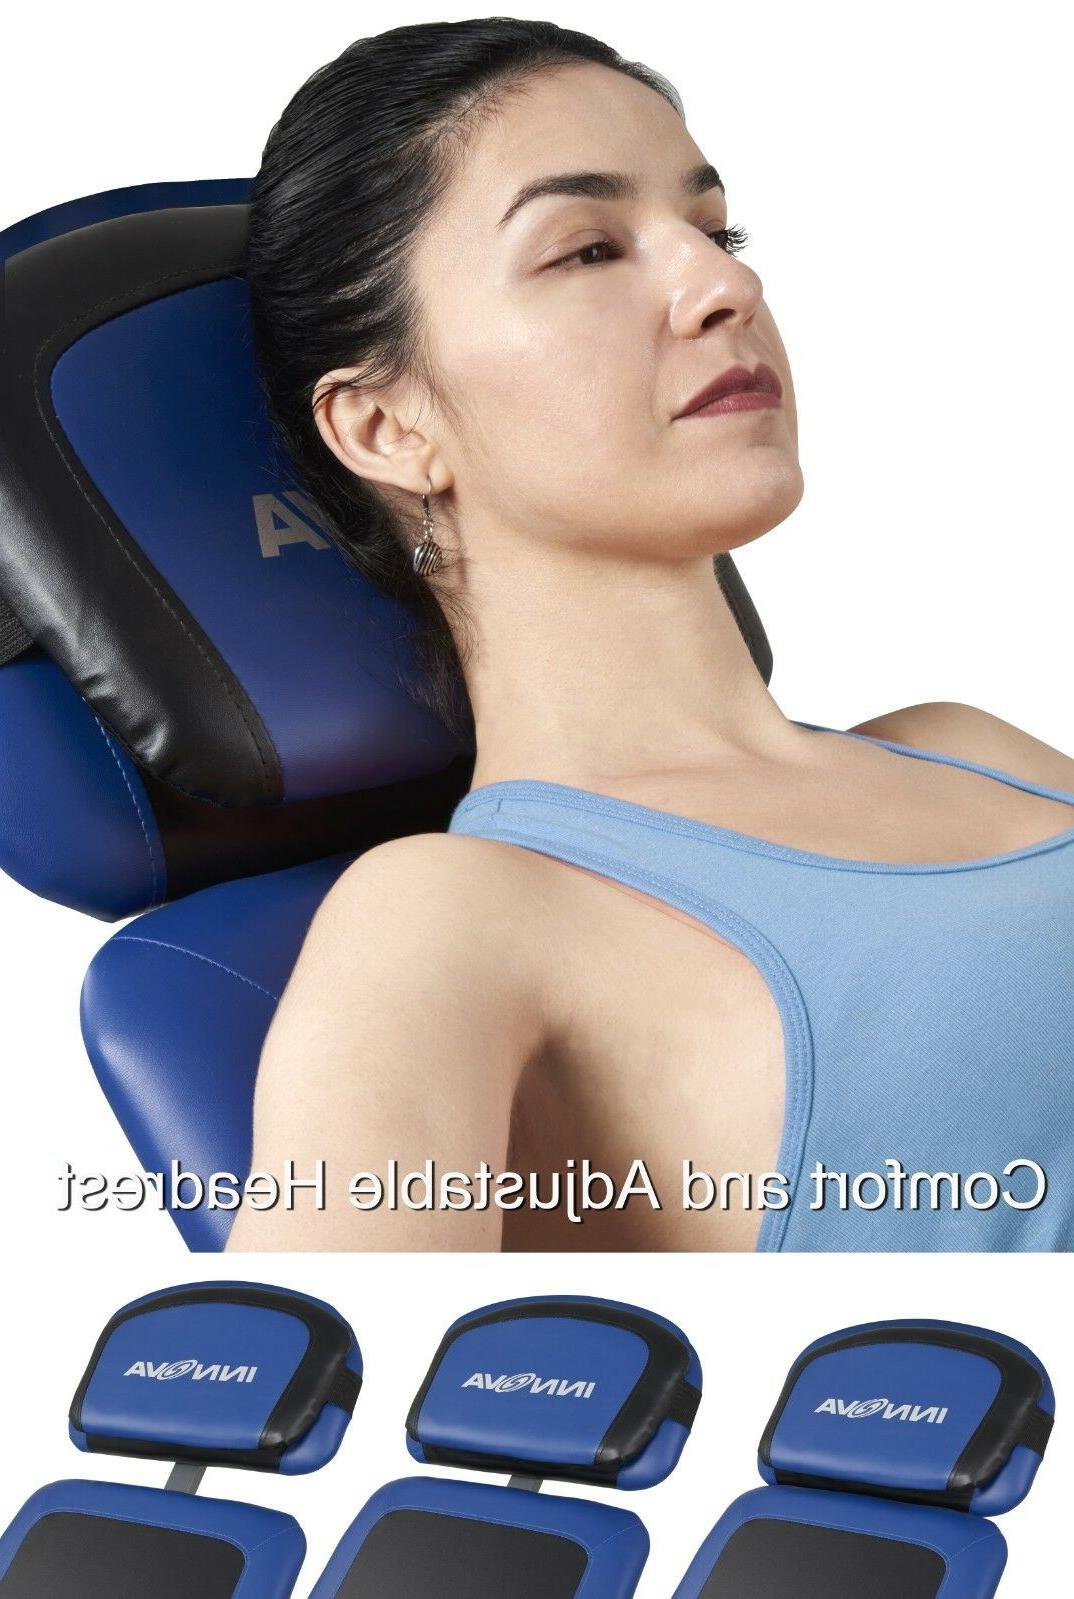 Innova ITM4800 and Massage Therapy